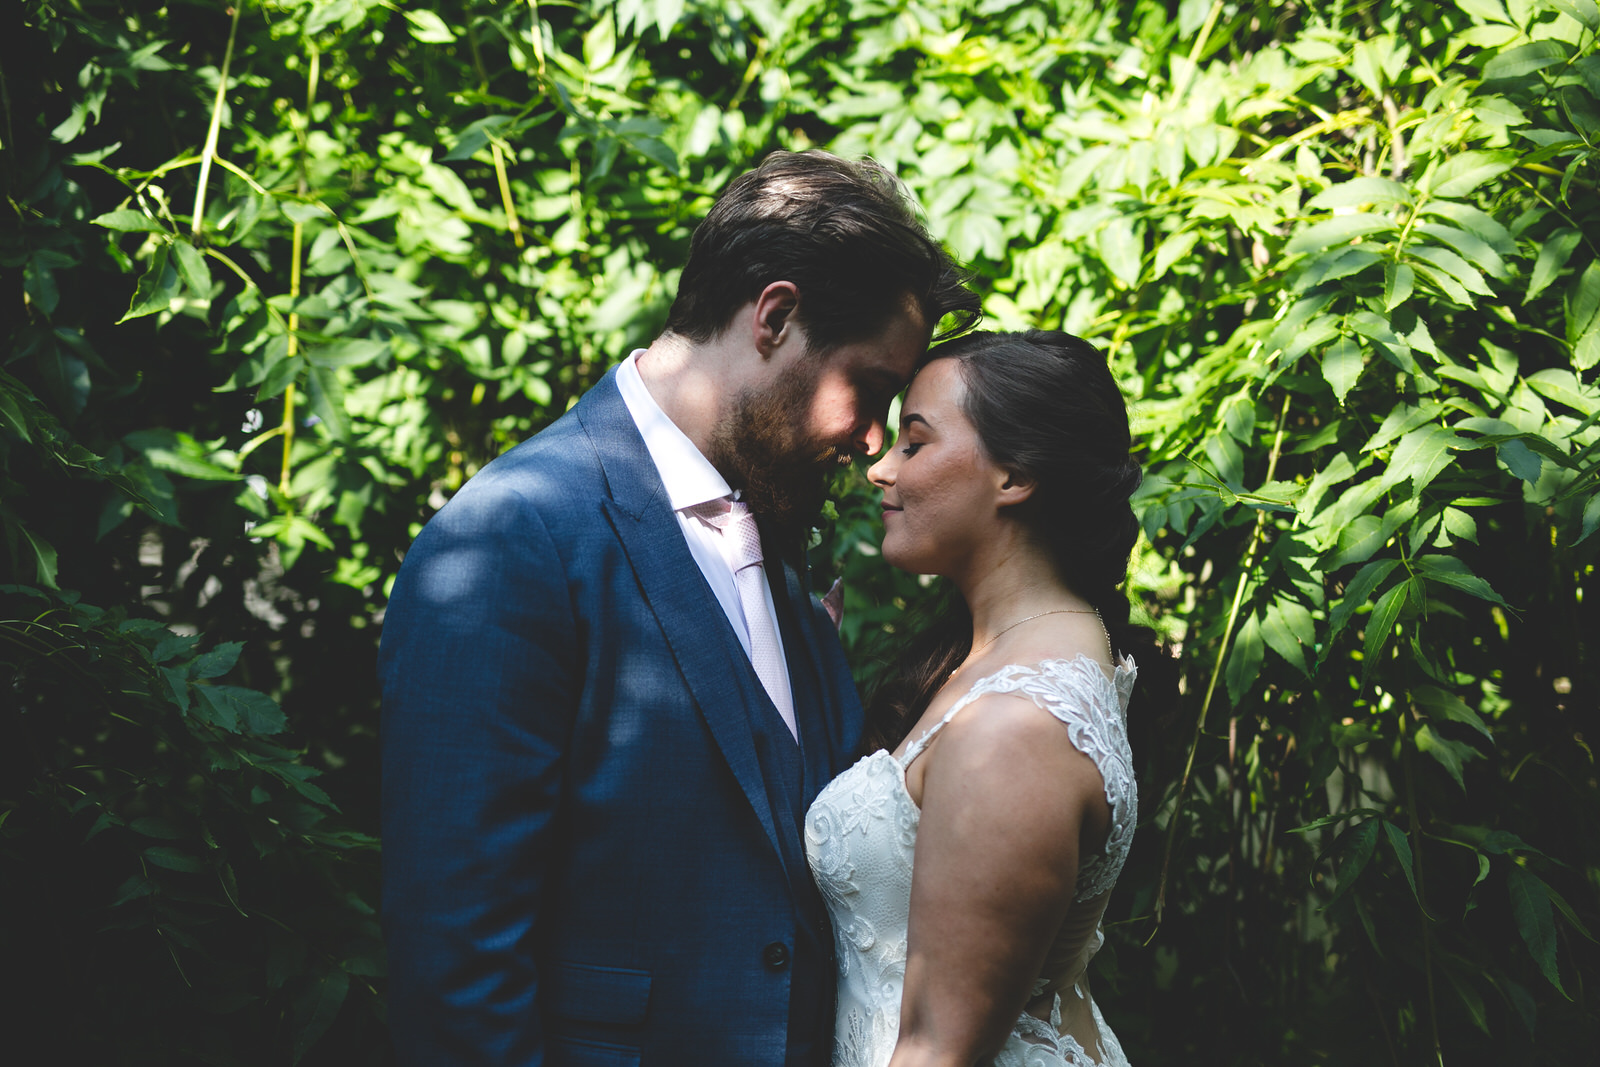 St Stephens green wedding photos